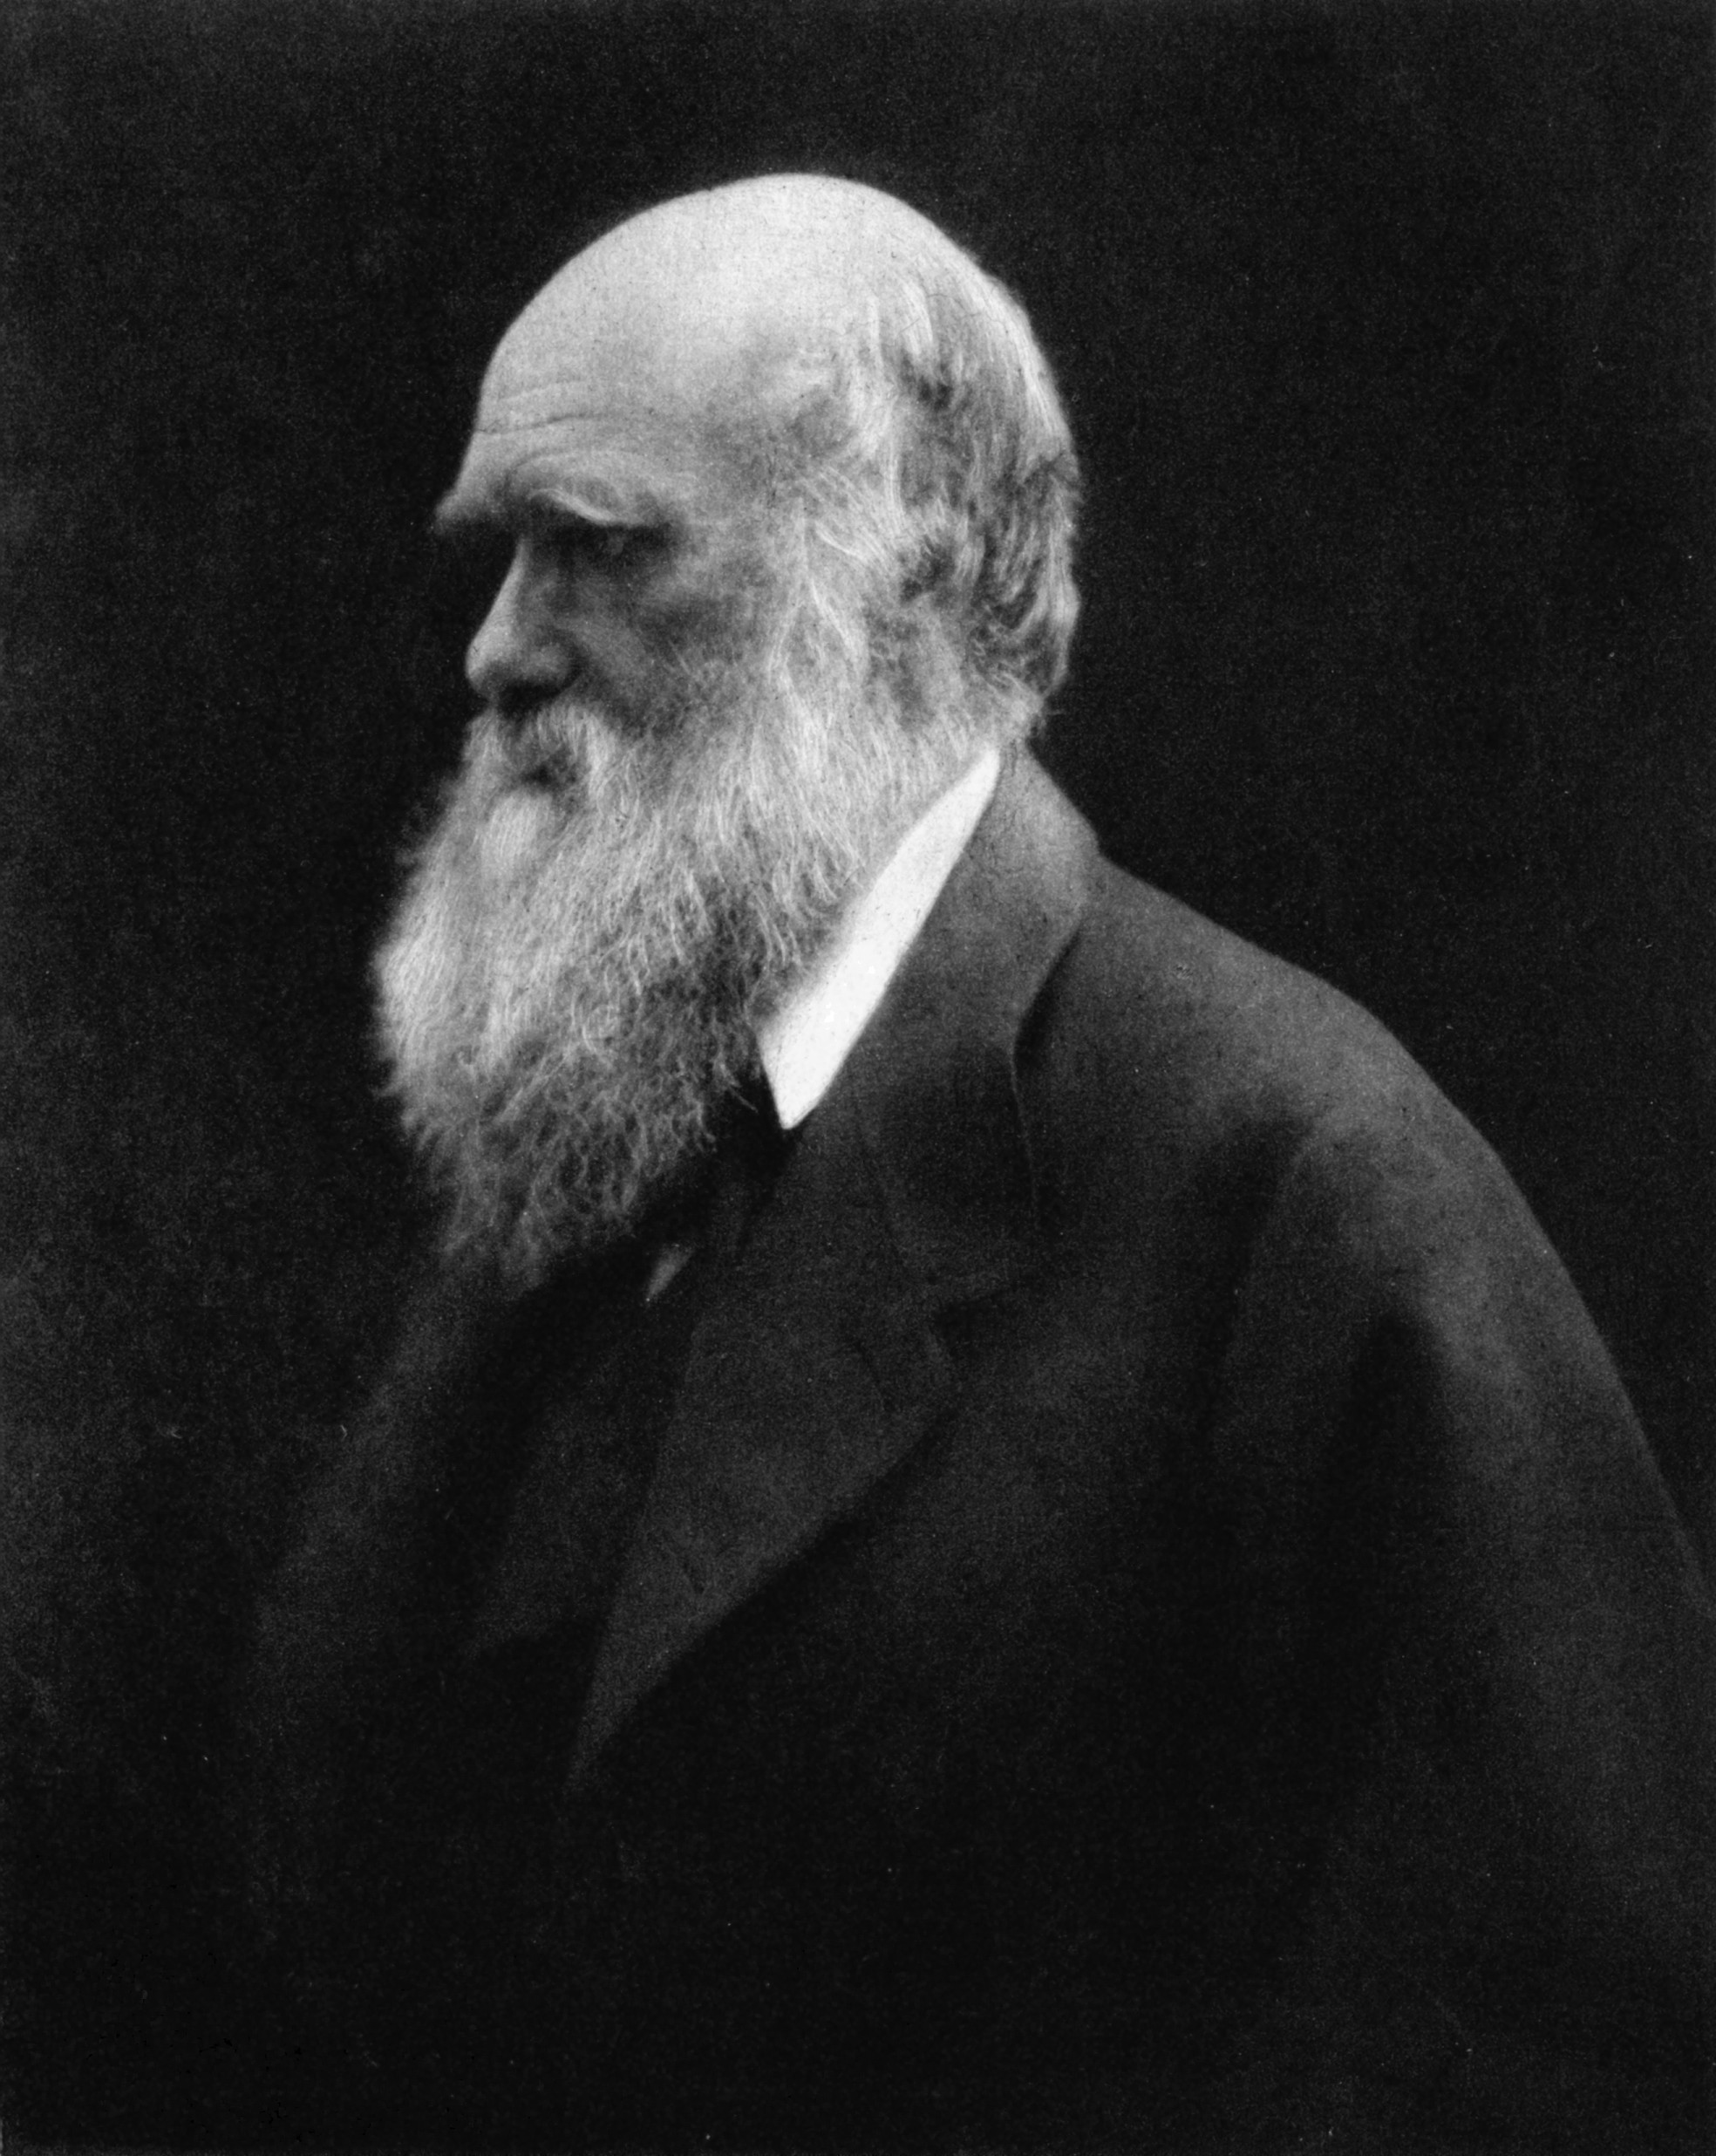 Charles Darwin  By Julia Margaret Cameron - Reprinted in Charles Darwin: His Life Told in an Autobiographical Chapter, and in a Selected Series of His Published Letters, edited by Francis Darwin. London: John Murray, Albemarle Street. 1892.Scanned by User:Davepape, Public Domain, https://commons.wikimedia.org/w/index.php?curid=3560761